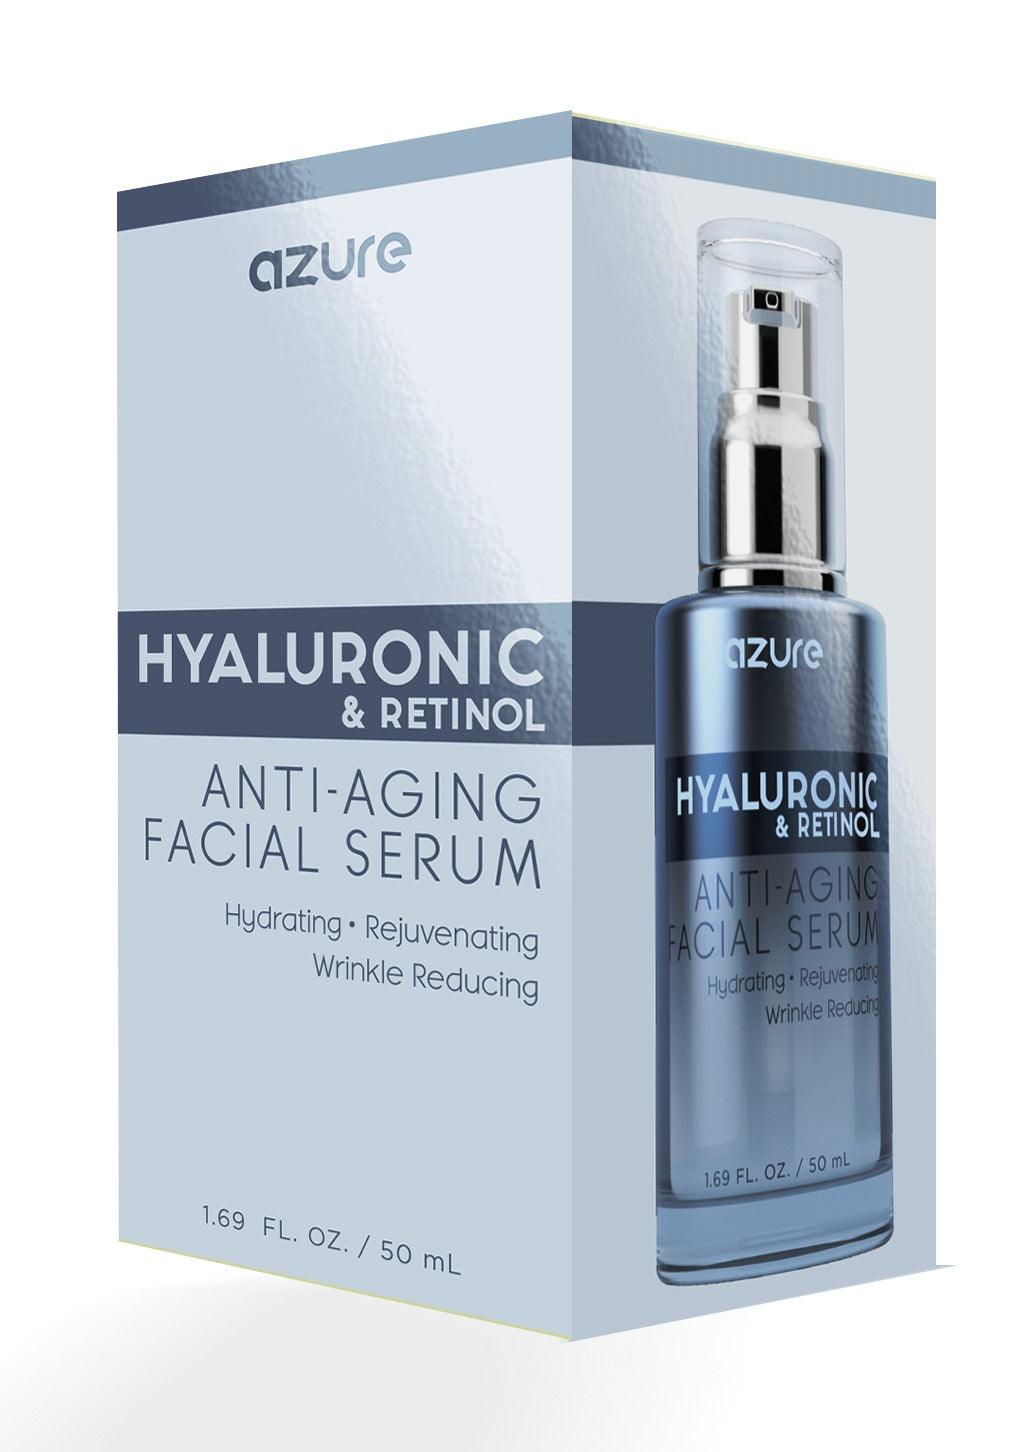 Hyaluronic and Retinol Anti-Aging Facial Serum